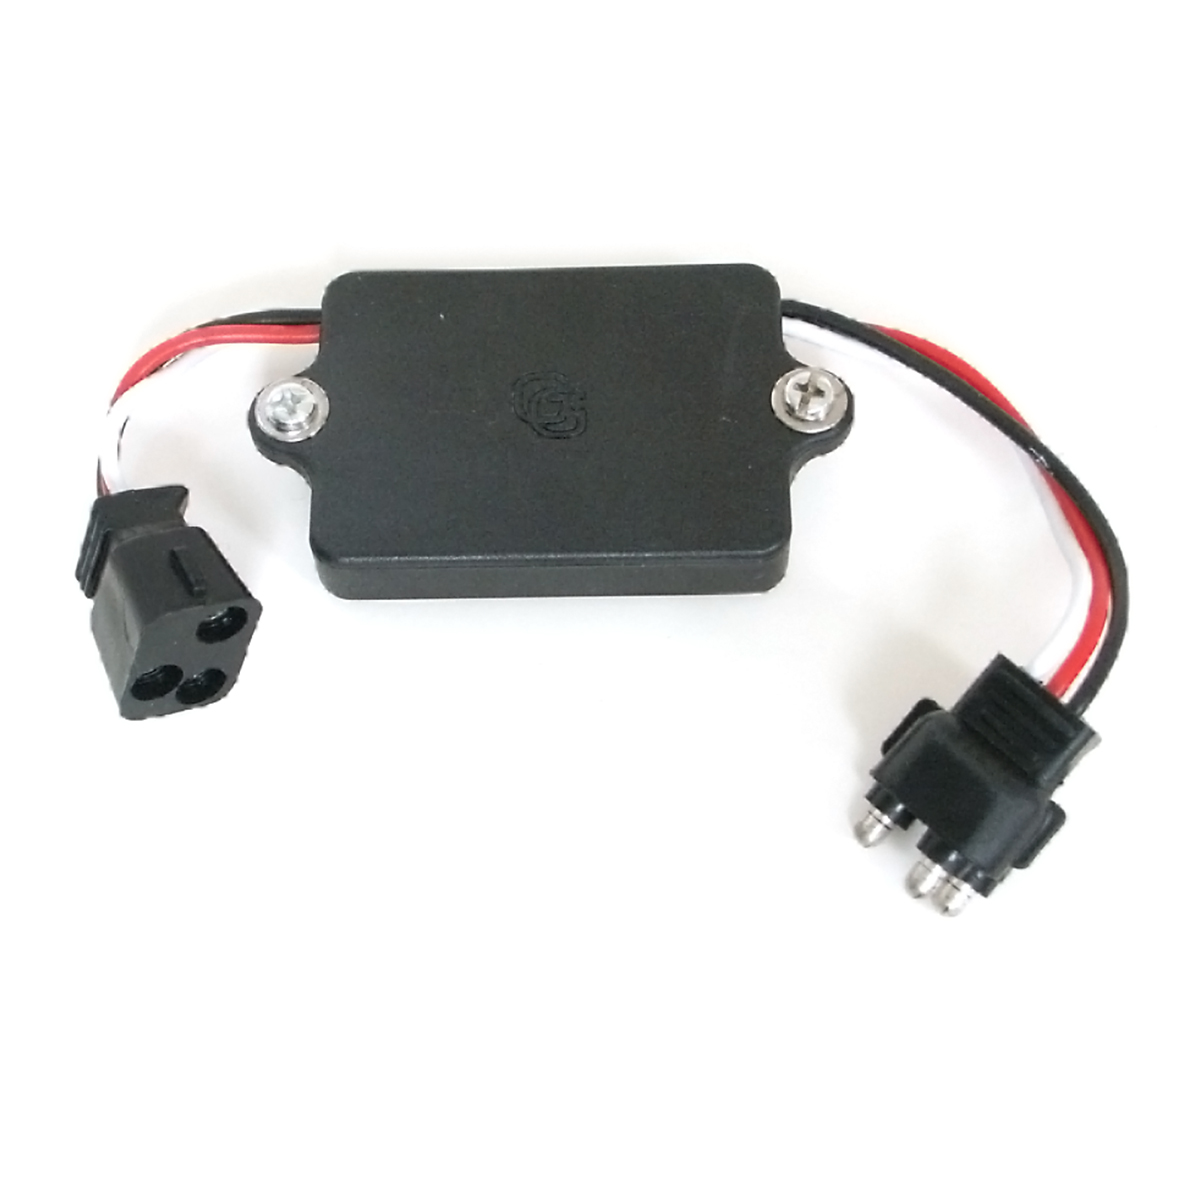 83020 LED Turn Signal Flasher Harness with Resistor